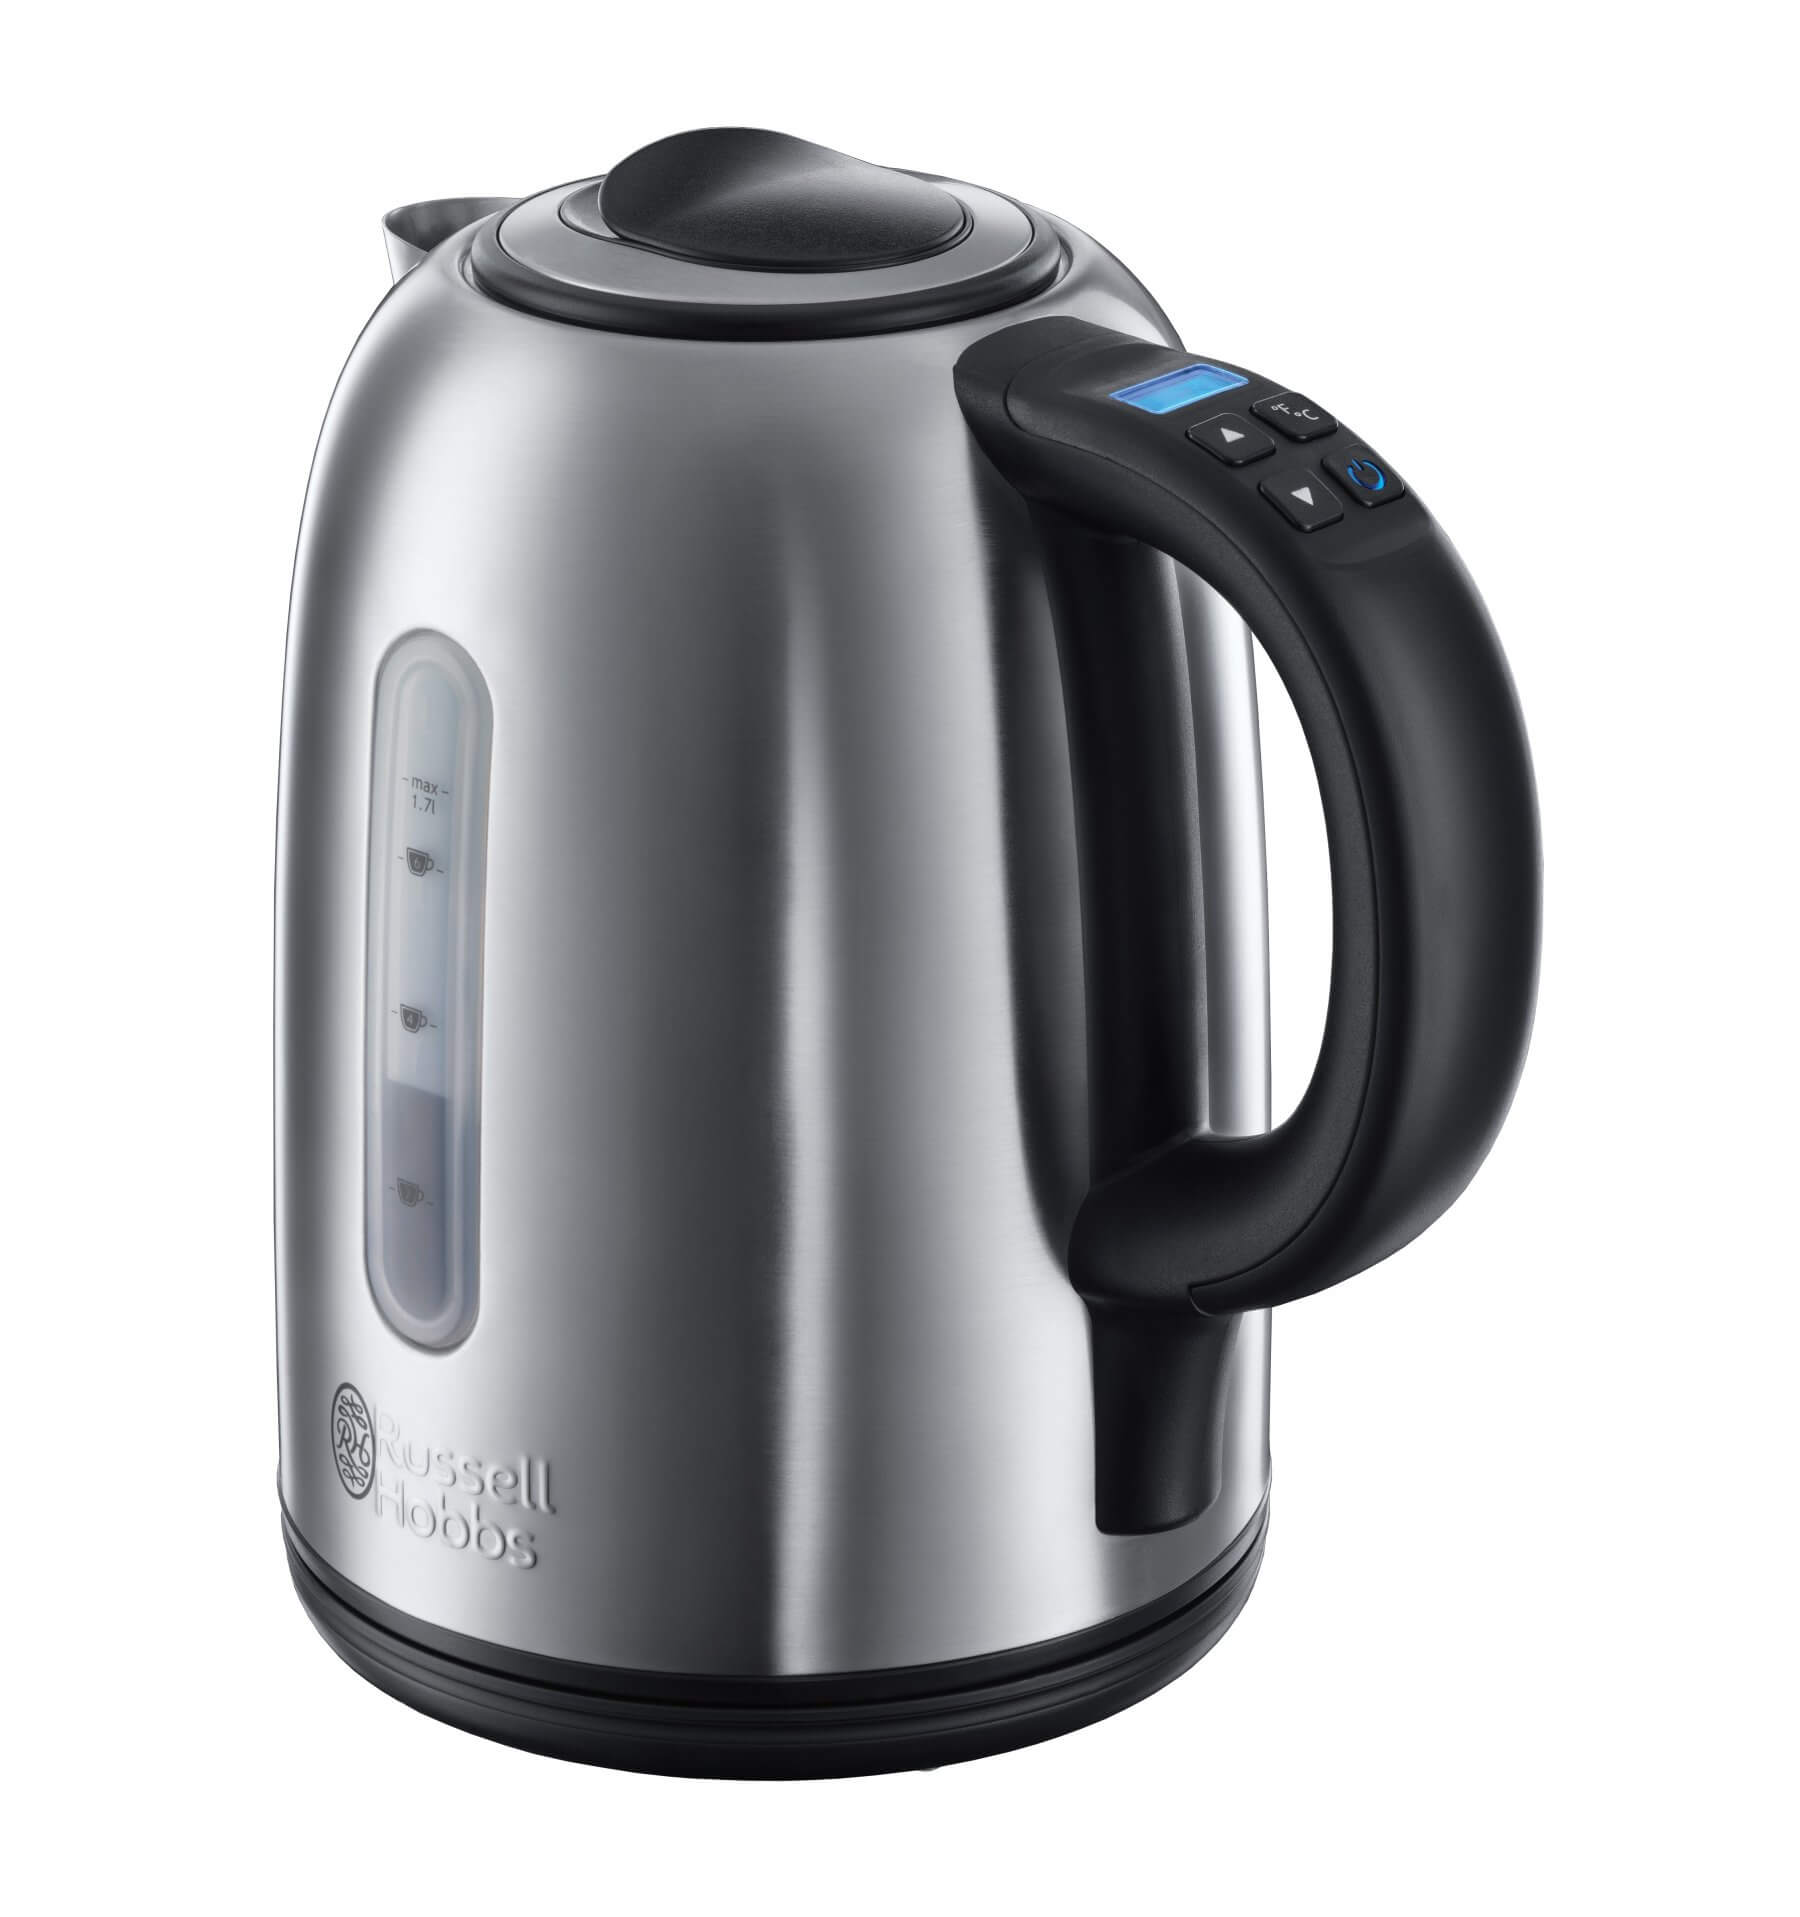 Czajnik Russell Hobbs Buckingham Digital 21040-70